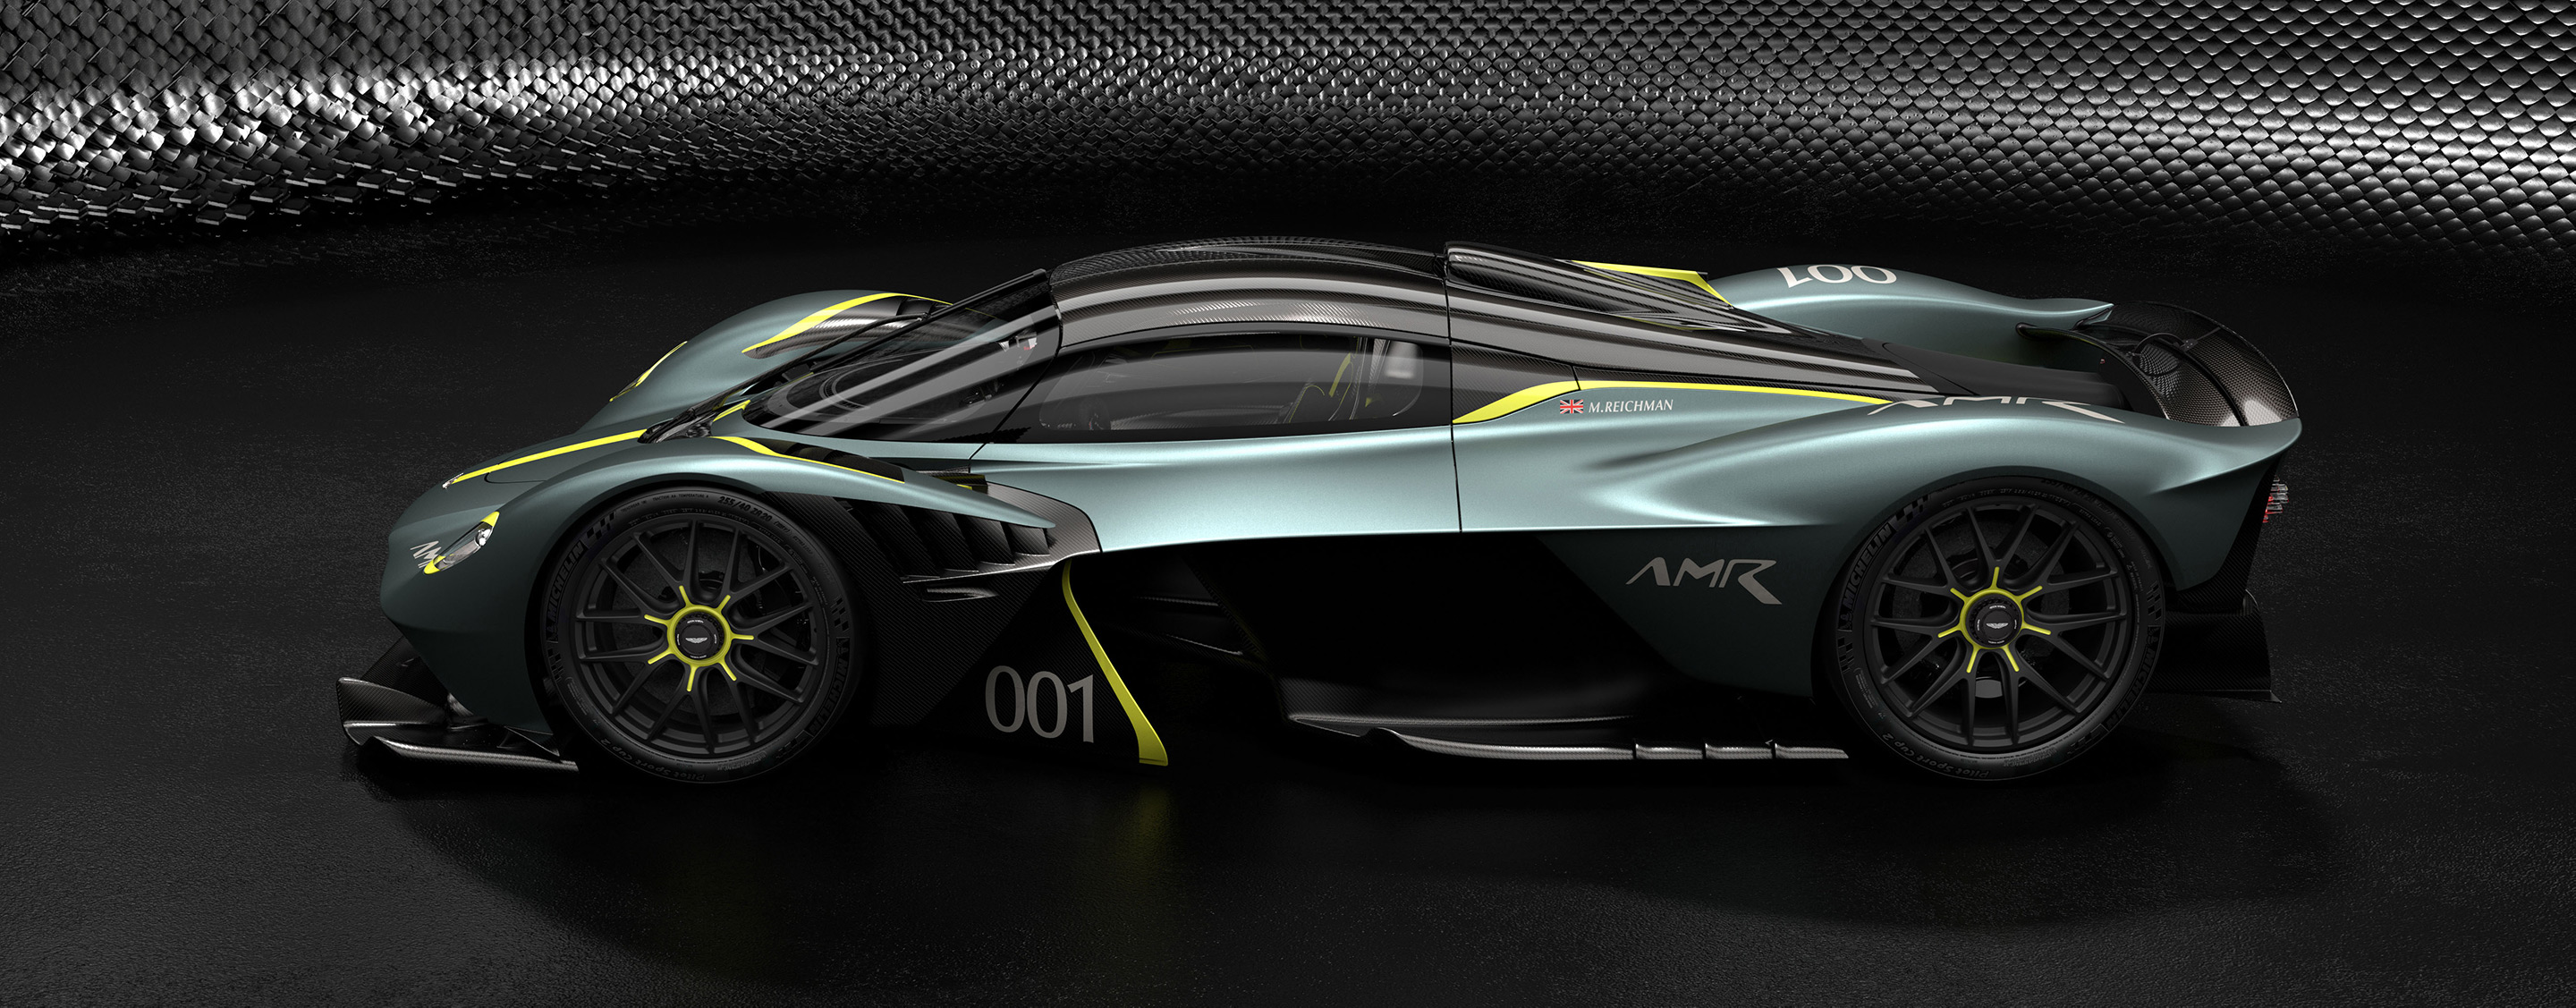 TrackWorthy - Aston Martin Valkyrie with AMR Track Performance Pack - Stirling Green and Lime livery (3)